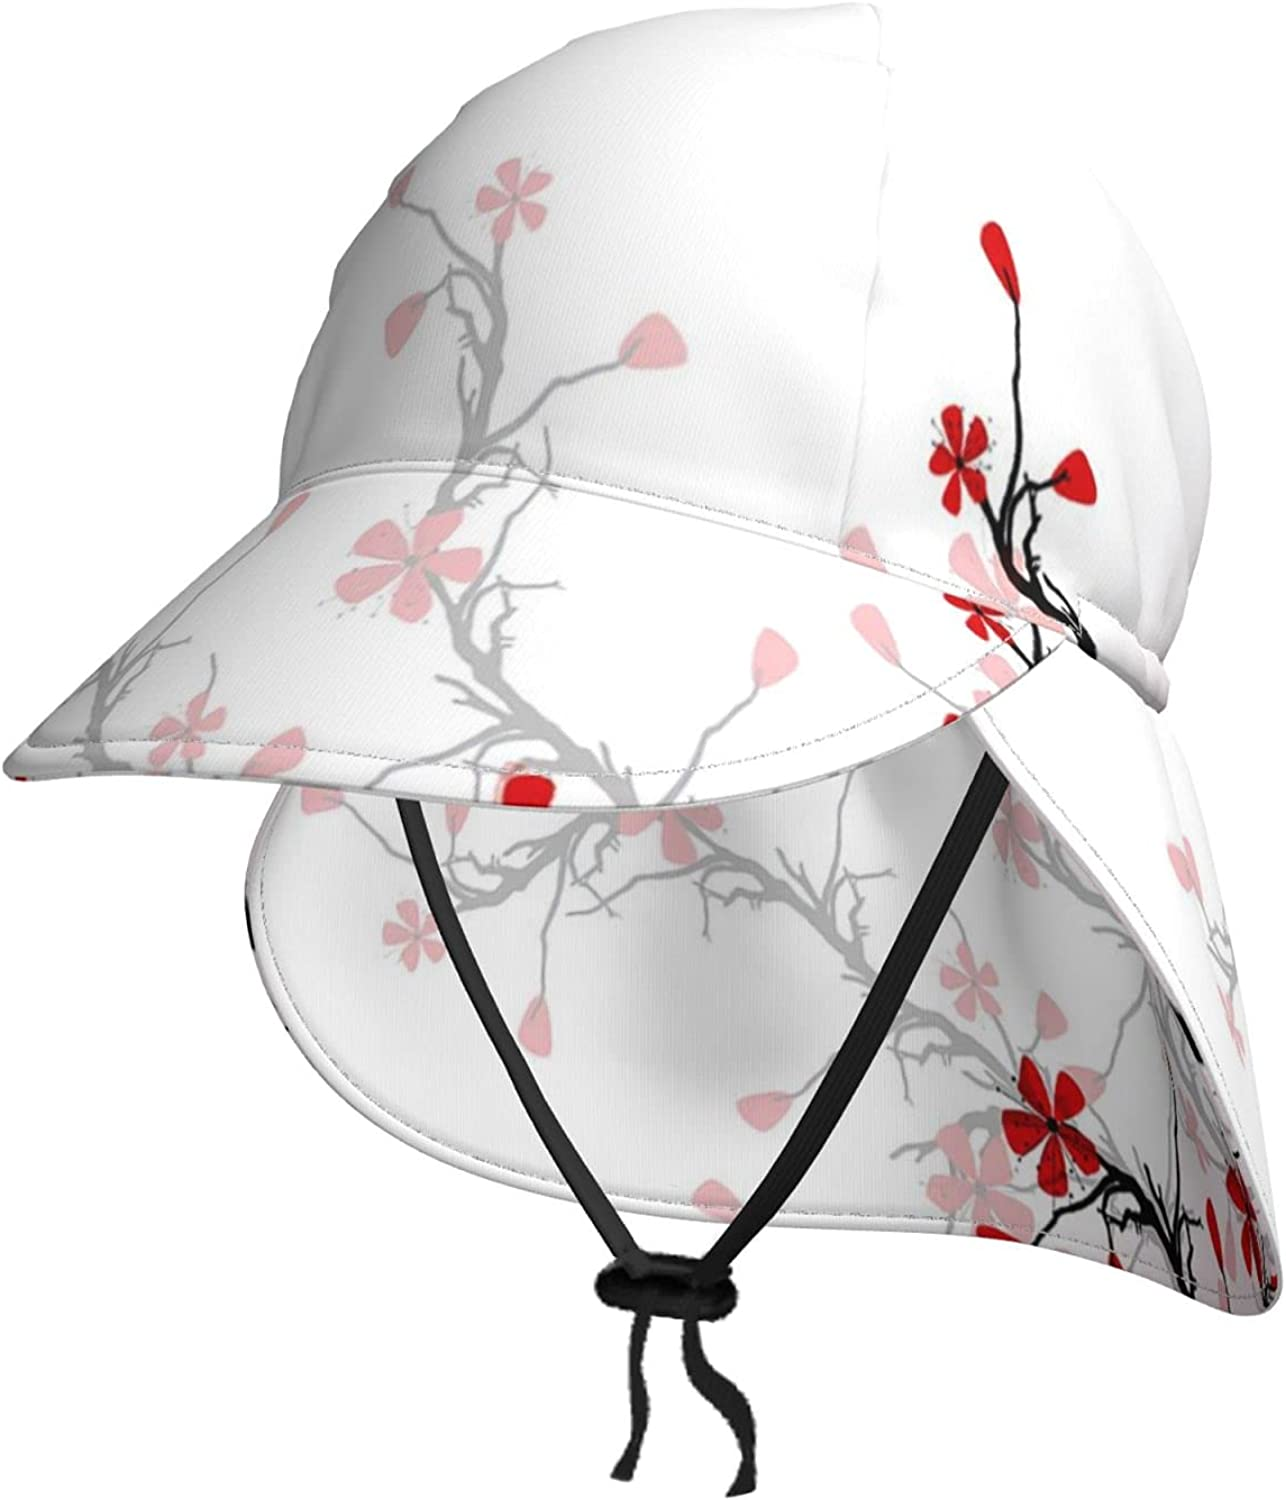 Toddler Sun Hat Jacksonville Mall for Kids Baby Uv Cap Flamingos Very popular Protection wi